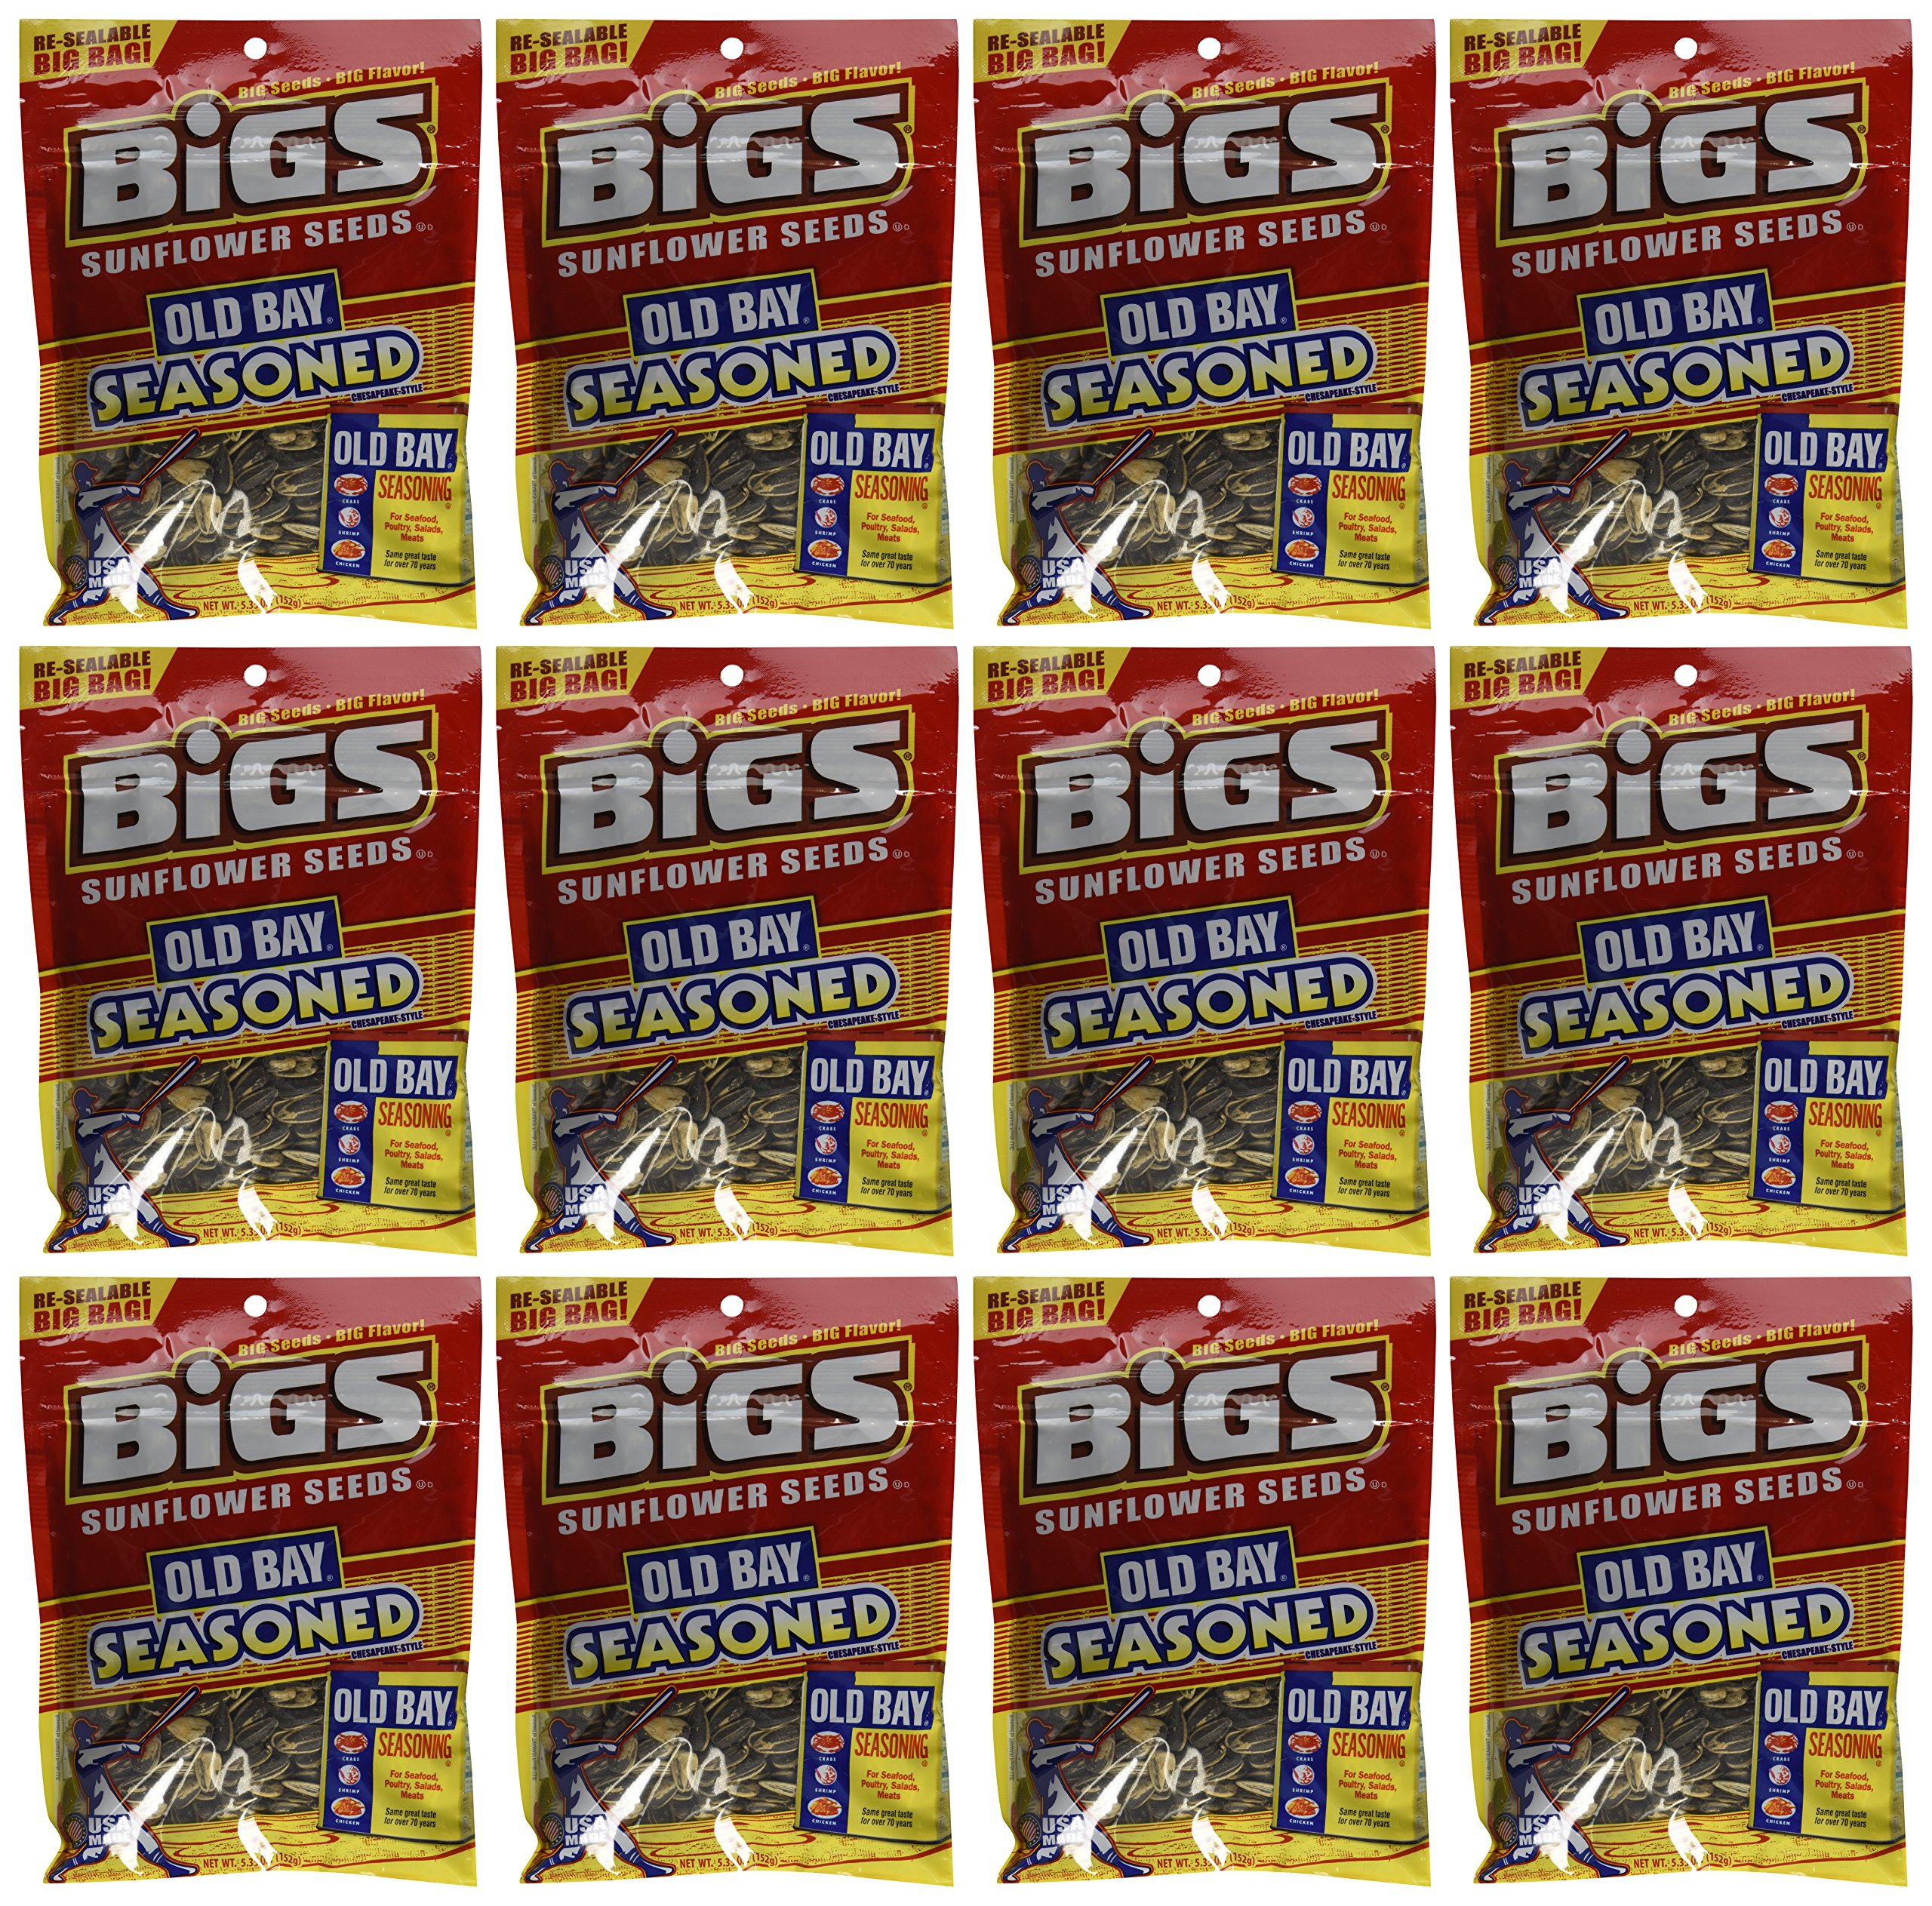 Bigs Old Bay Catch of the Day Seasoned Sunflower Seeds, 5.35 Ounce -- 12 per case by Thanasi